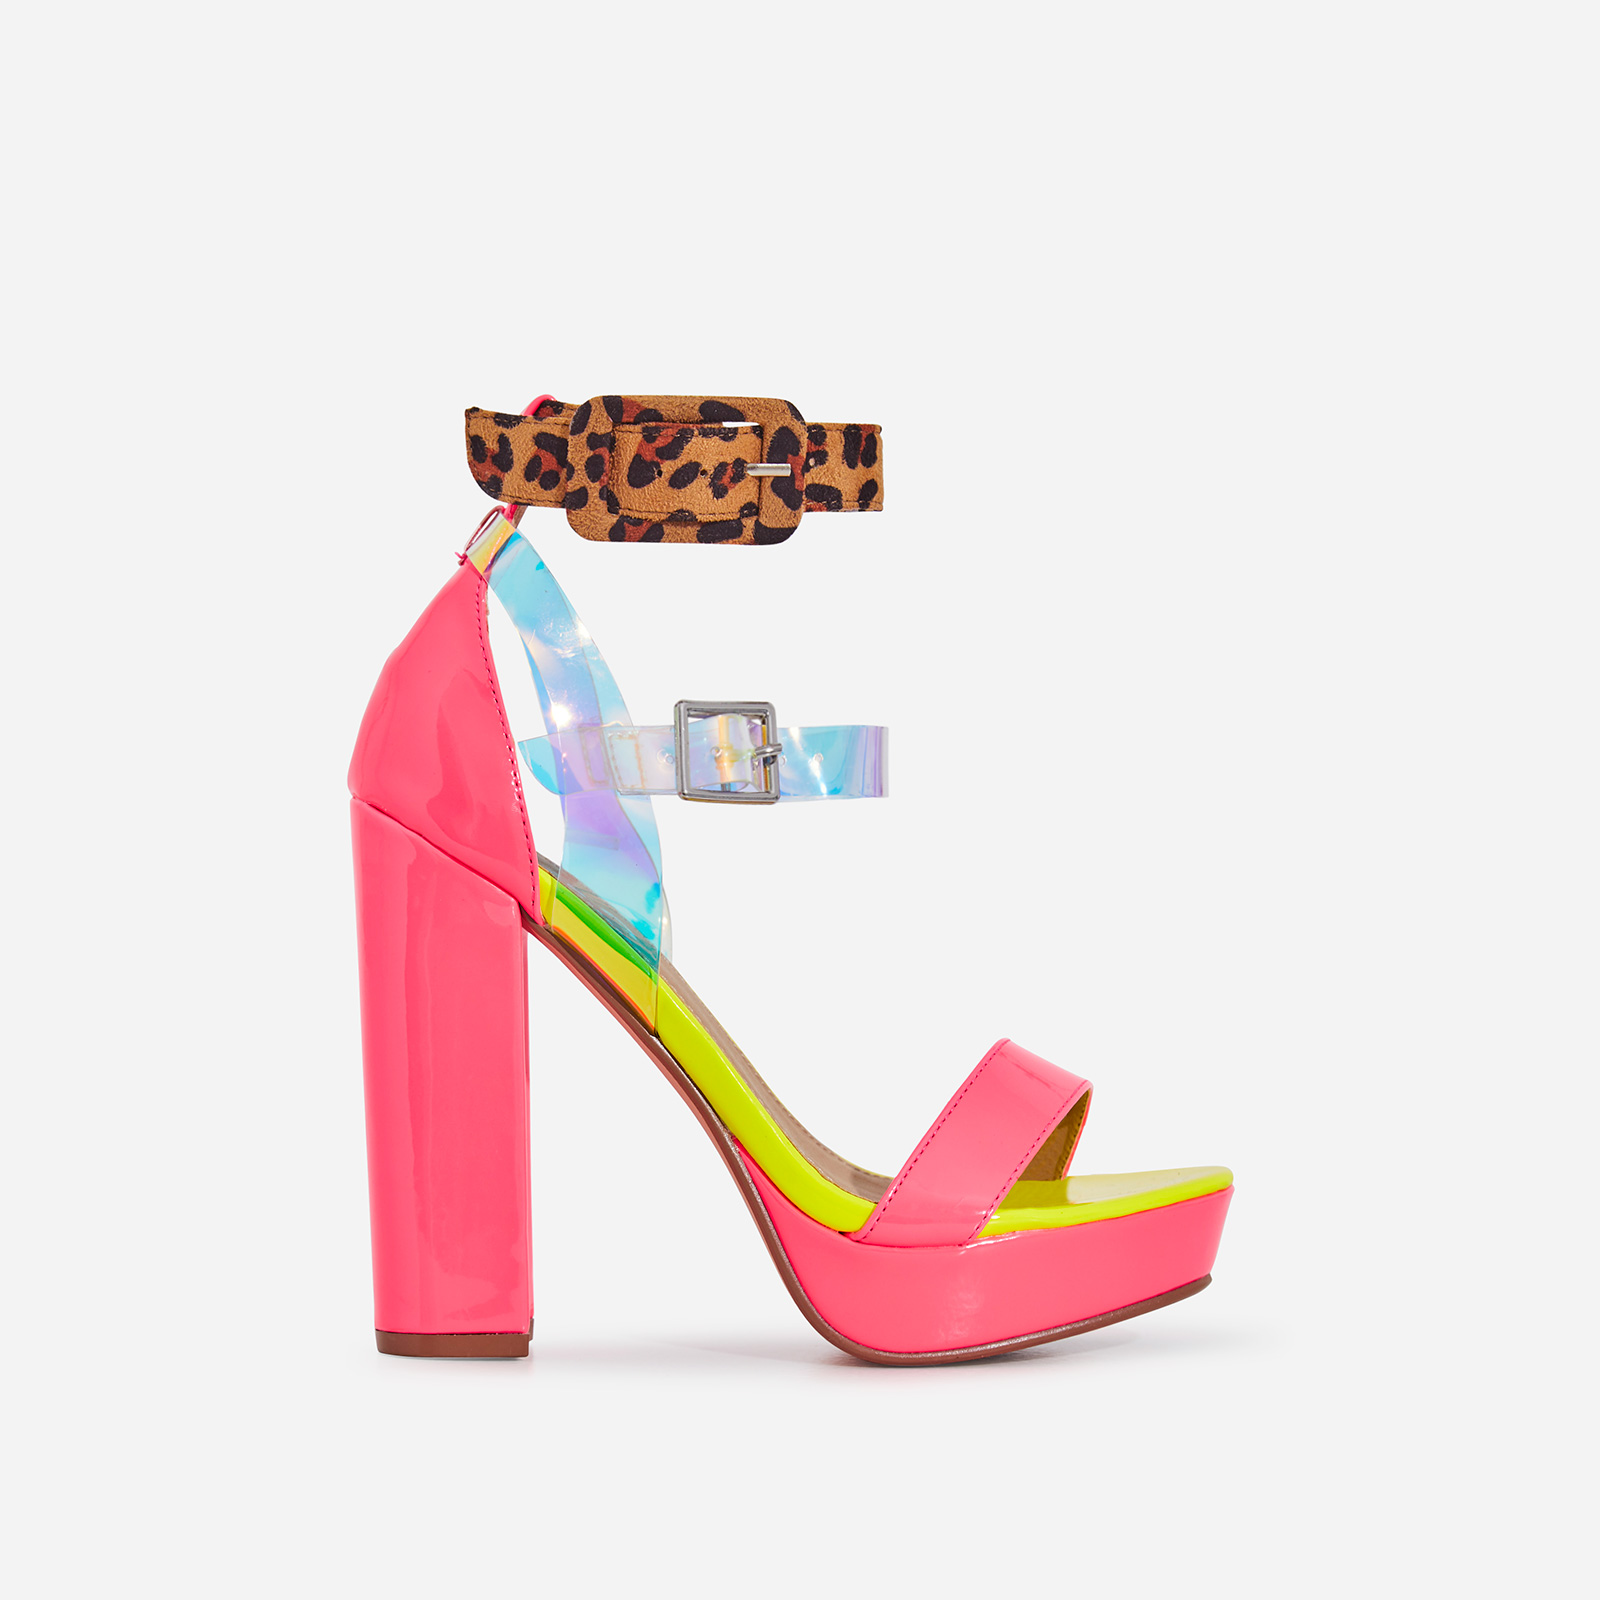 Moving Perspex Double Buckle Platform Heel In Neon Pink Patent